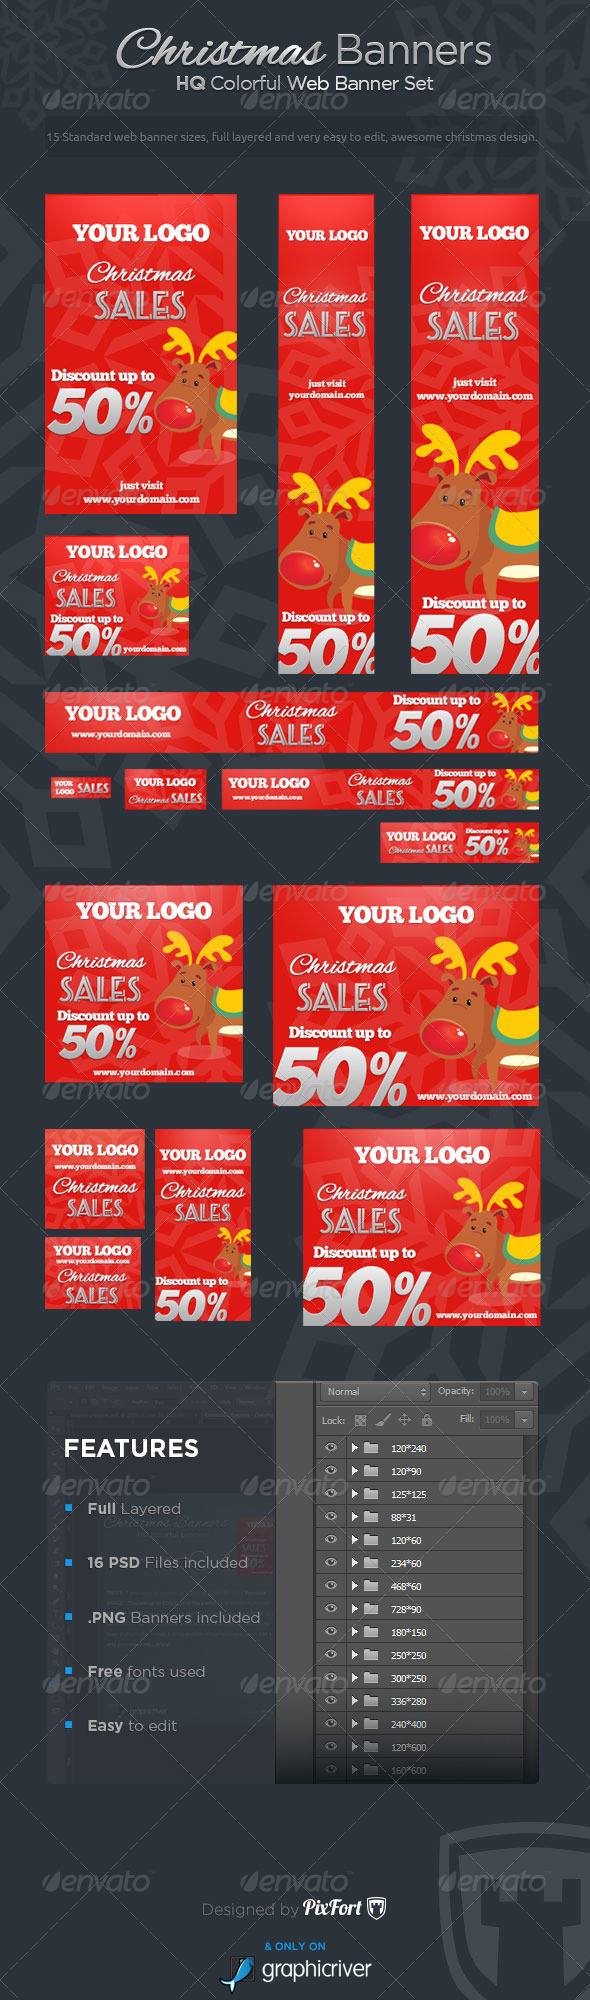 Christmas Banners - Colorful Web Banner Set - Banners & Ads Web Elements